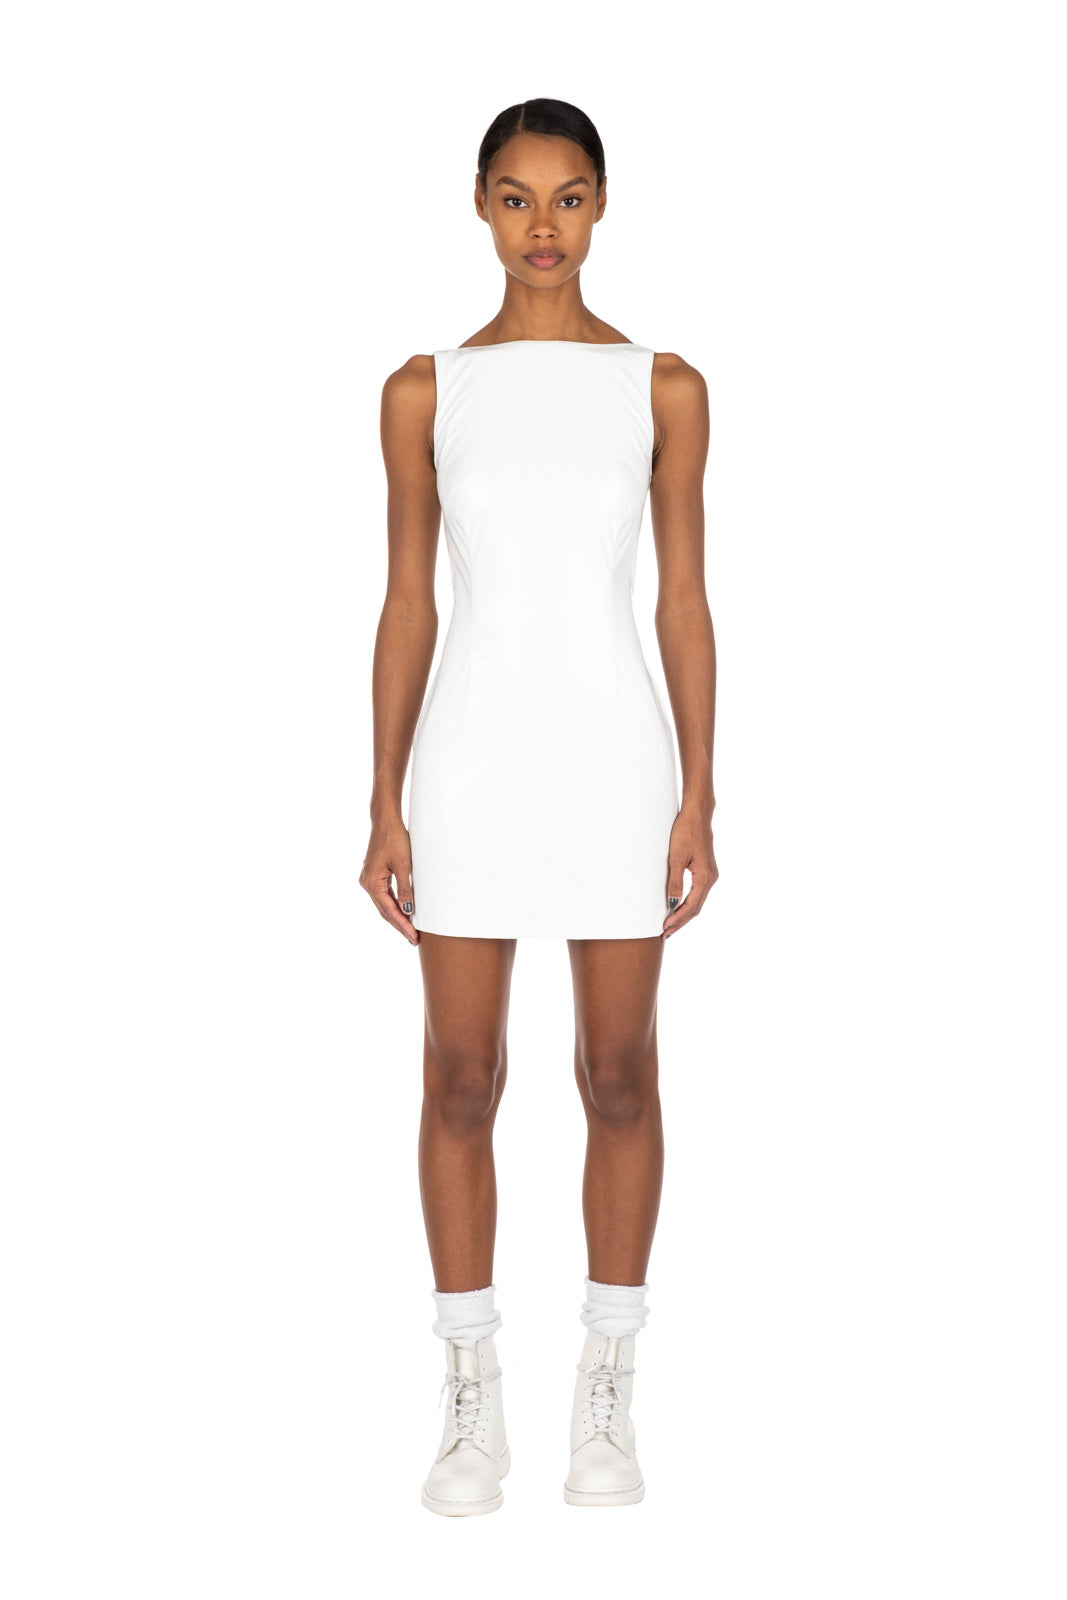 PATENT MINI DRESS - White